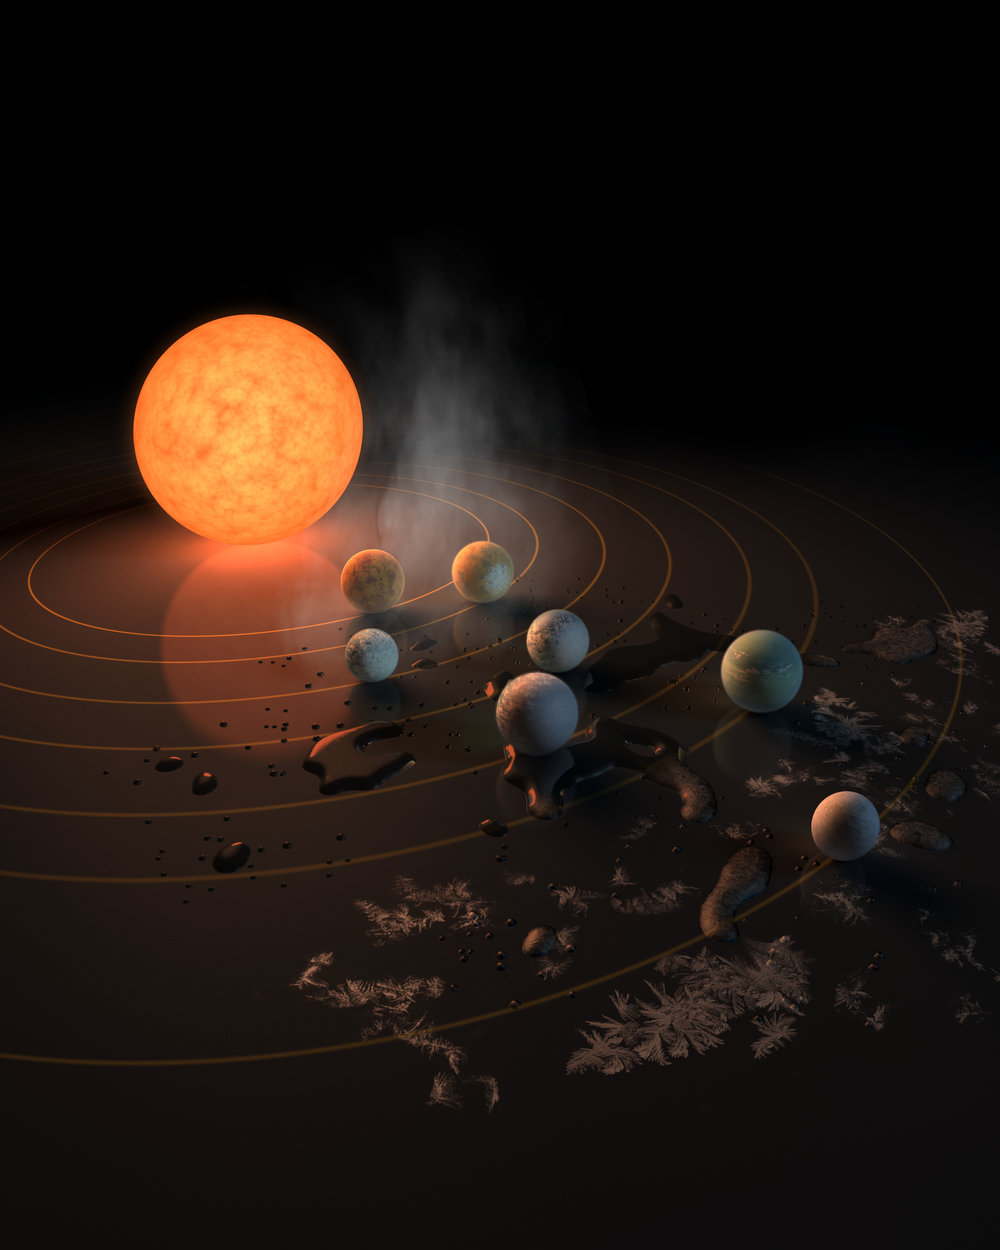 Abstract Concept of TRAPPIST-1 System (Credit: NASA/JPL-Caltech/R. Hurt (IPAC))